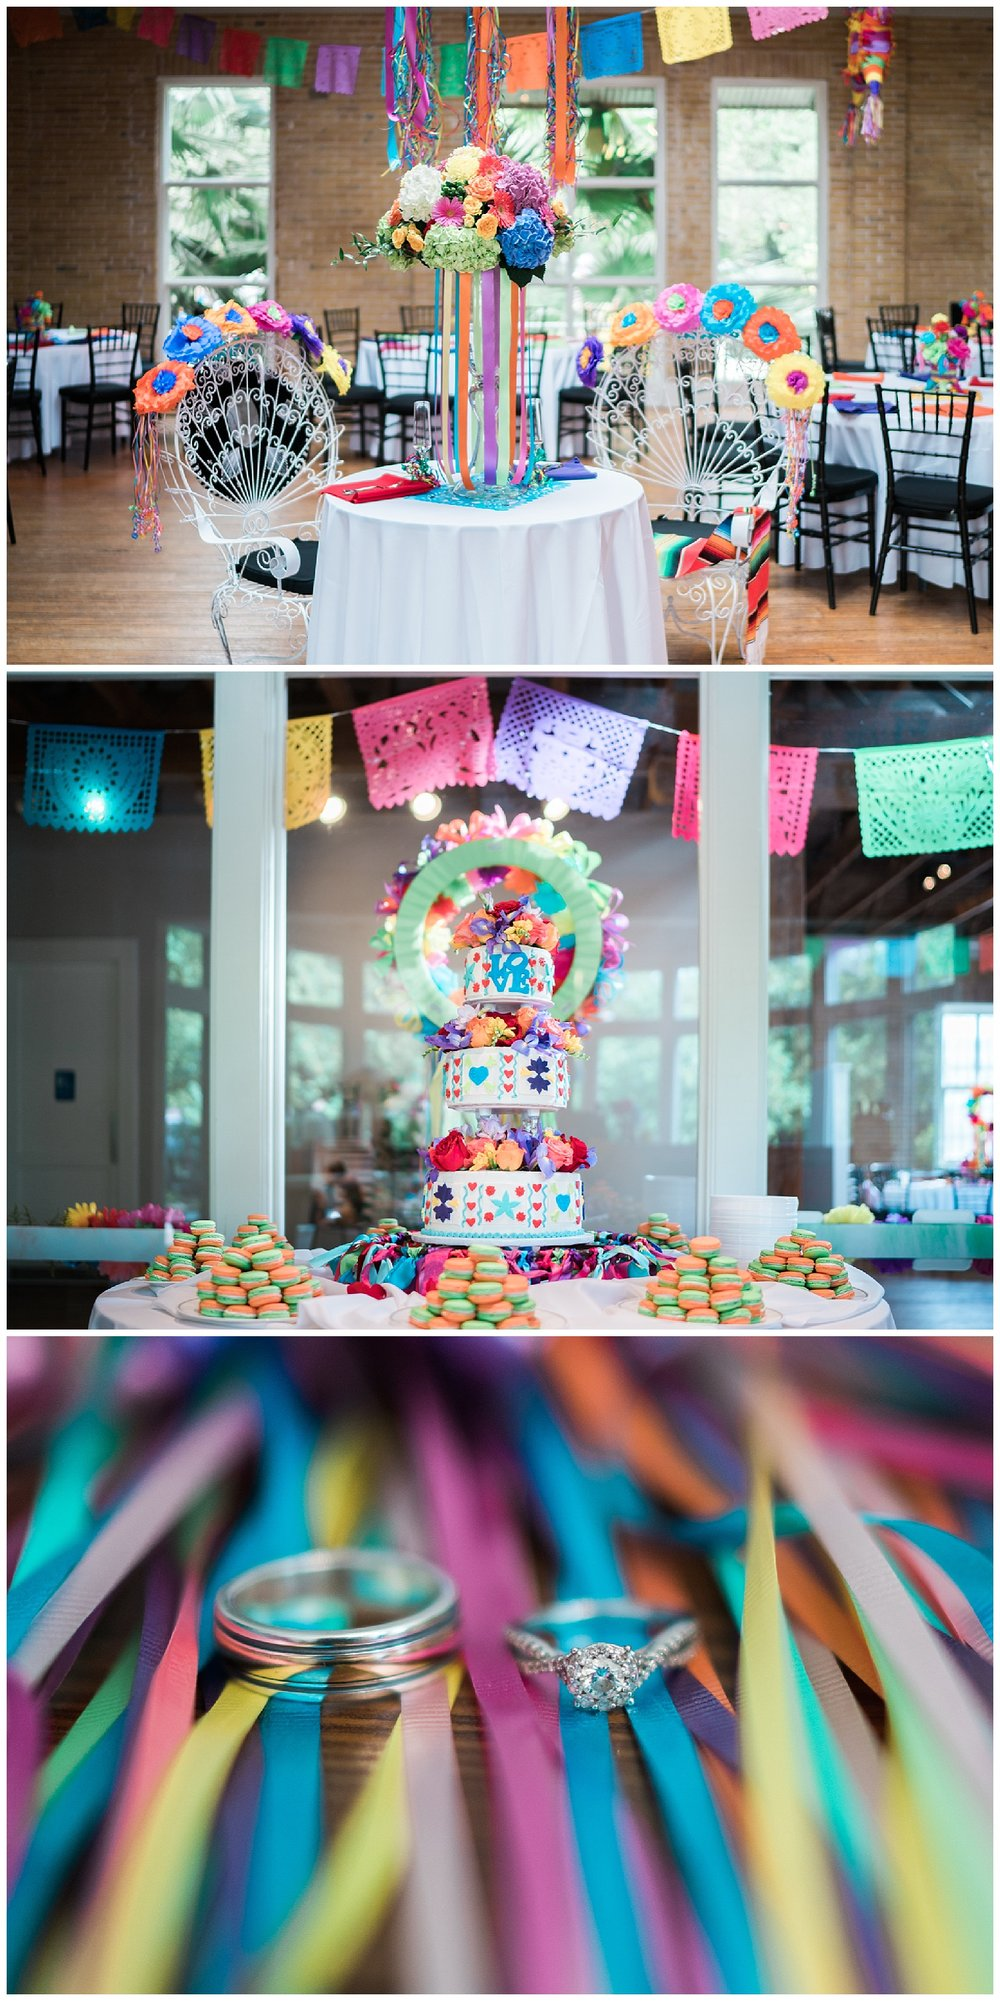 Zaza Garden Fiesta Wedding - San Antonio Wedding Photographer